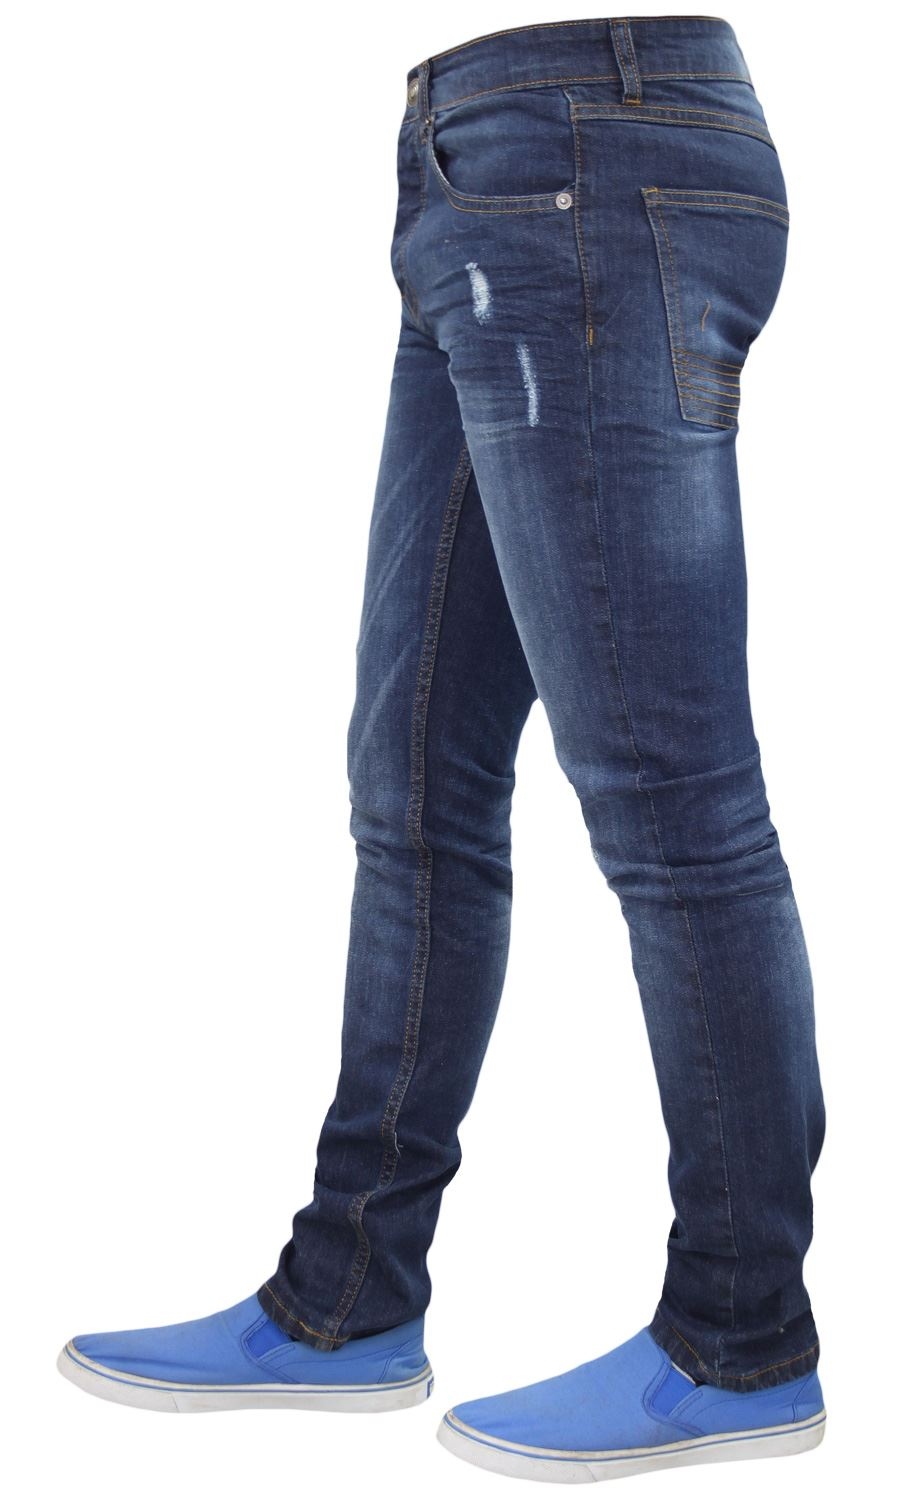 Mens-Skinny-Stretch-Ripped-Jeans-Slim-Fit-Casual-Trousers-Denim-Pants-All-Sizes thumbnail 8